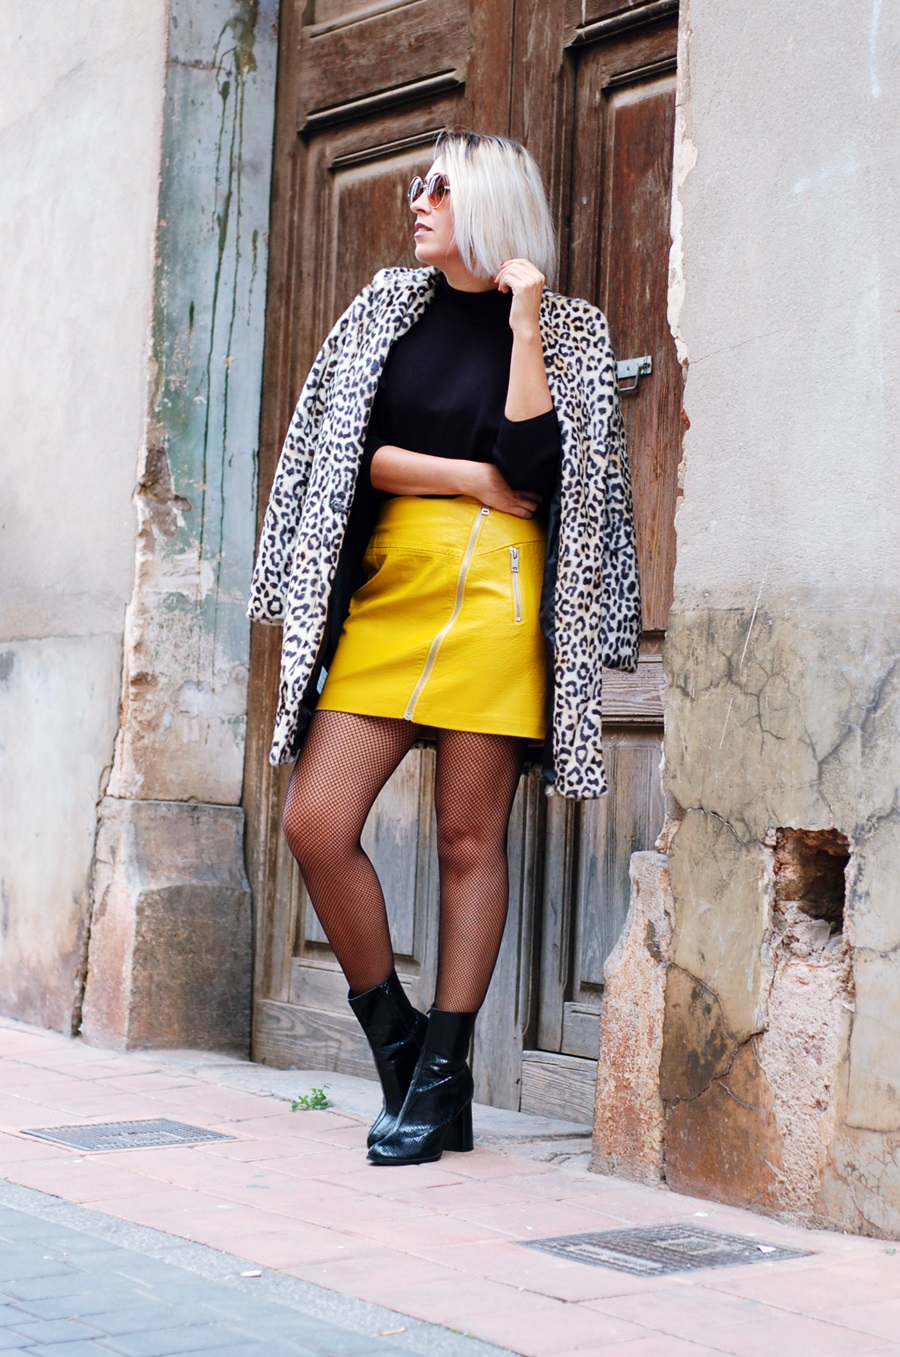 ruffles, volantes, yellow leather skirt, medias de rejilla littledreamsbyr leopard coat